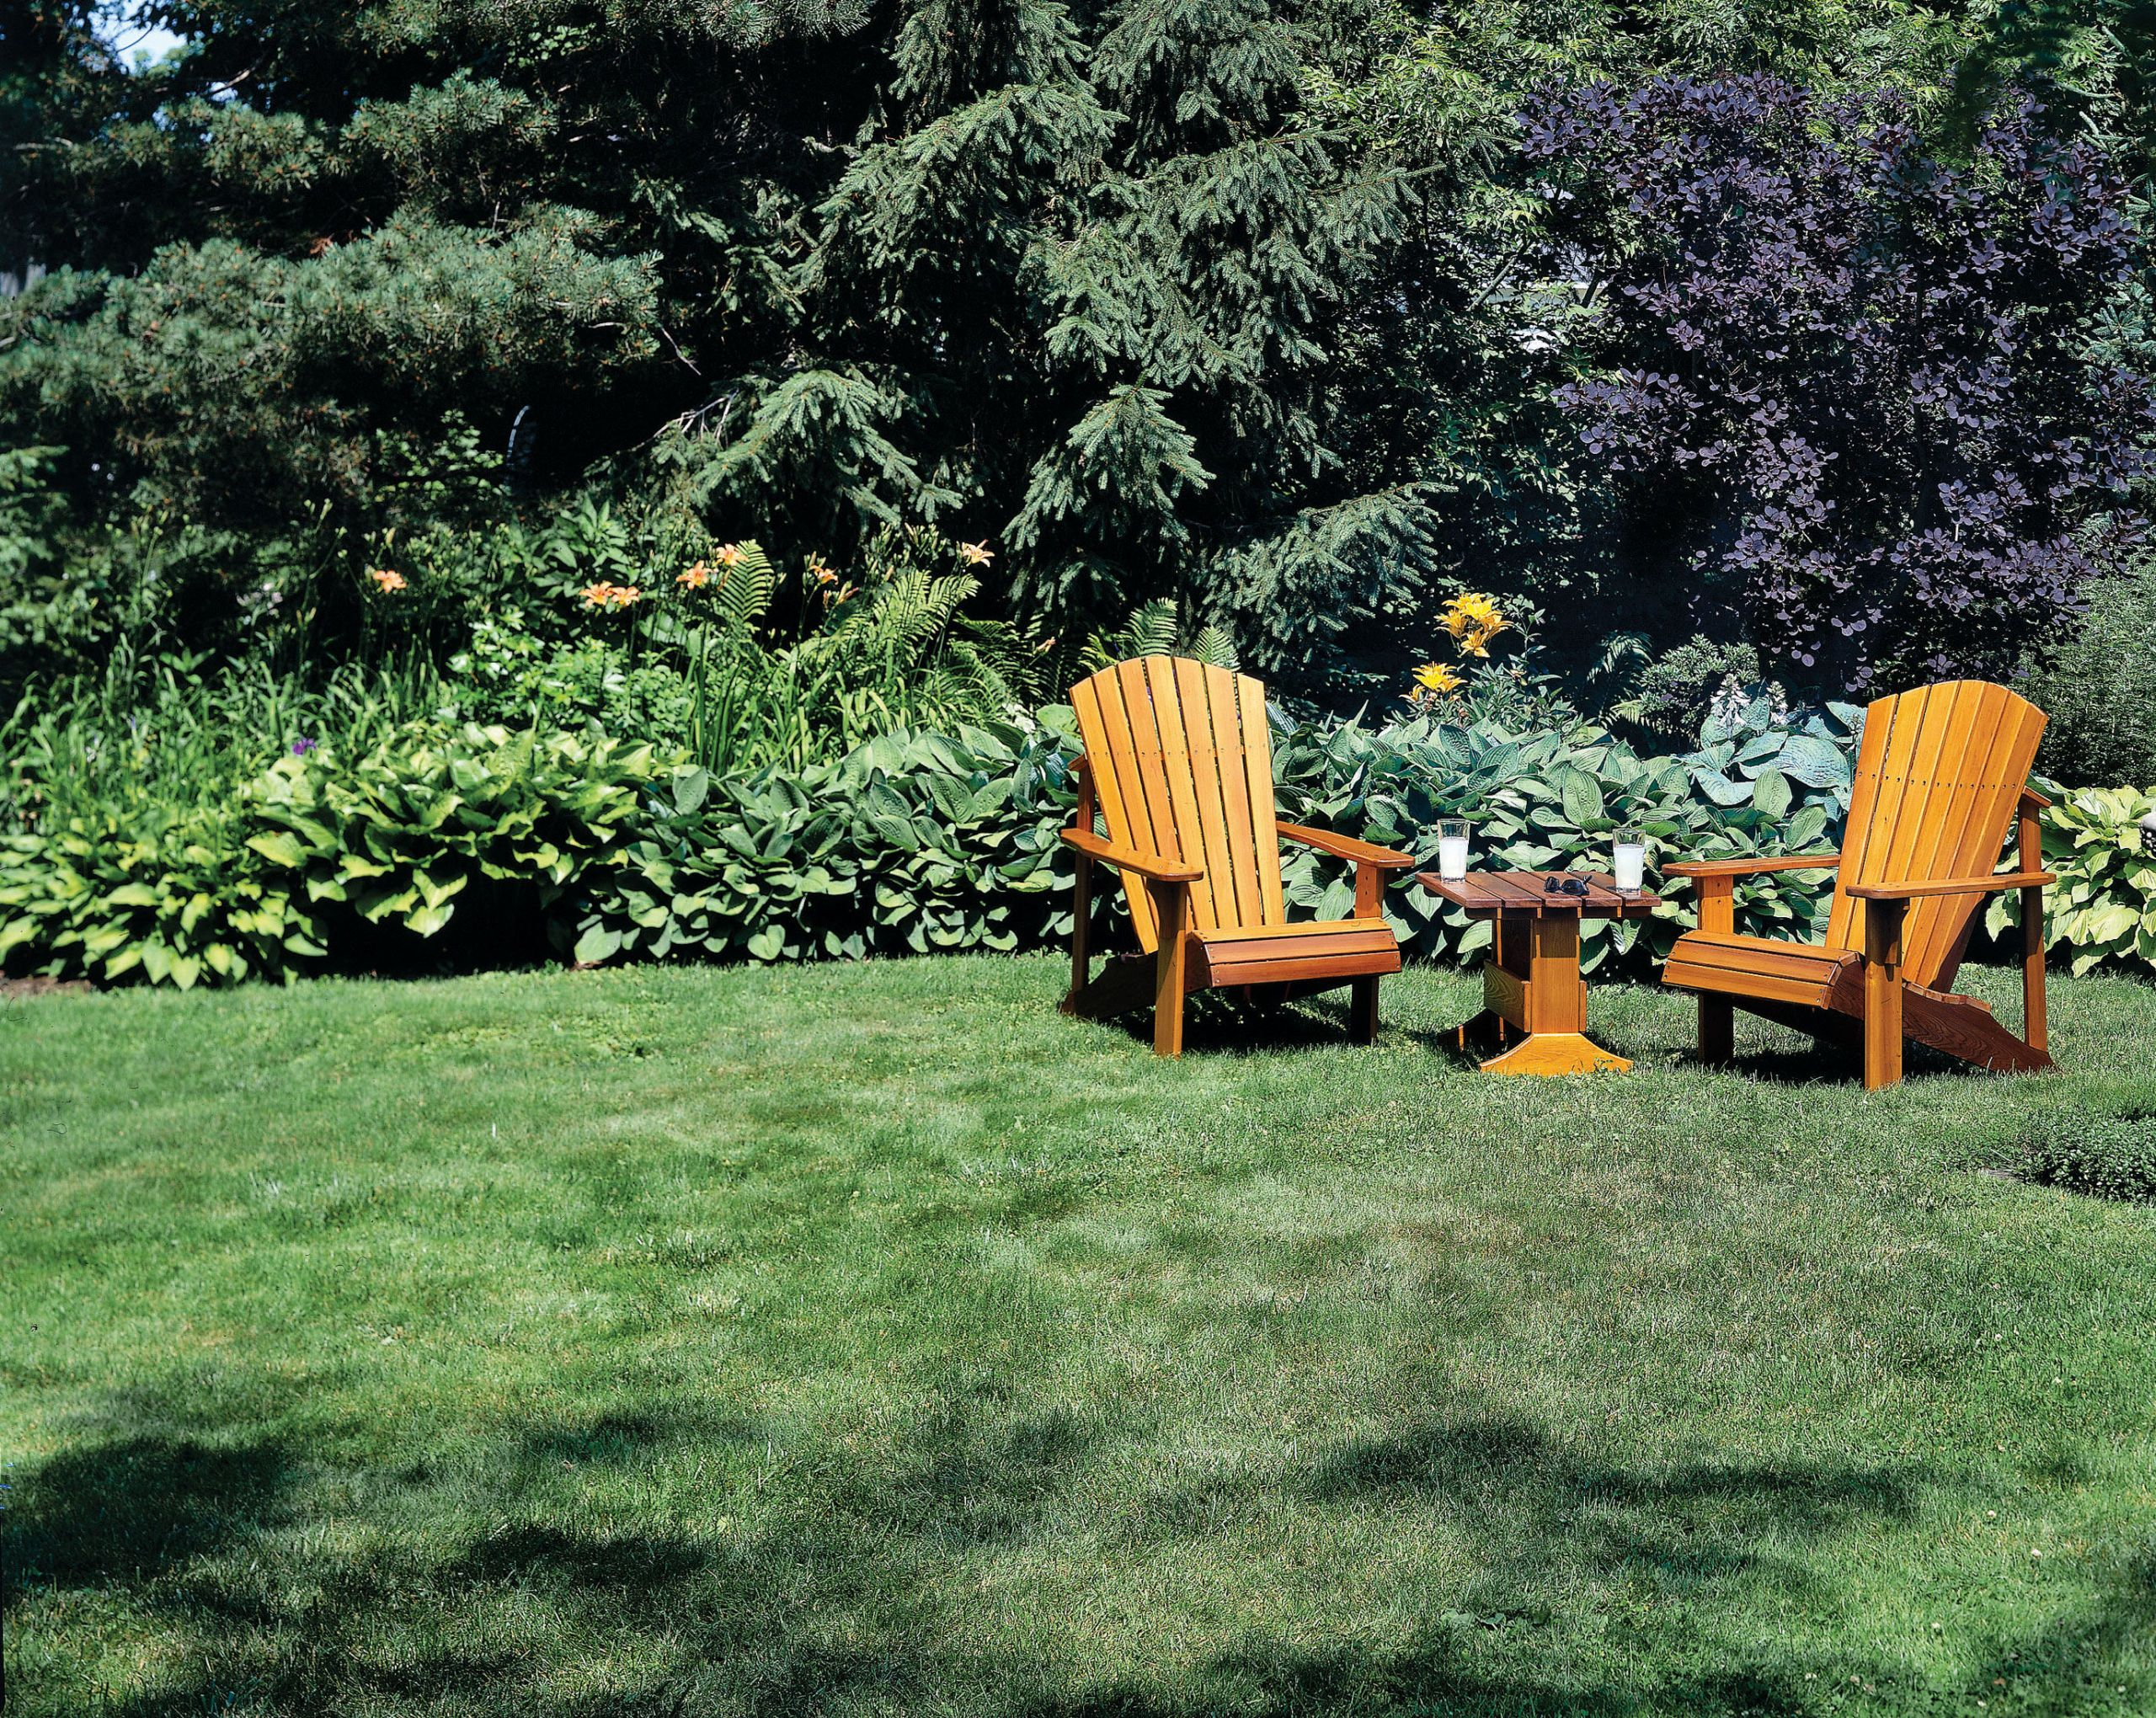 These Adirondack Chair Plans Will Help You Build An Outdoor Furniture Set  That Becomes The Centerpiece Of Your Backyard.